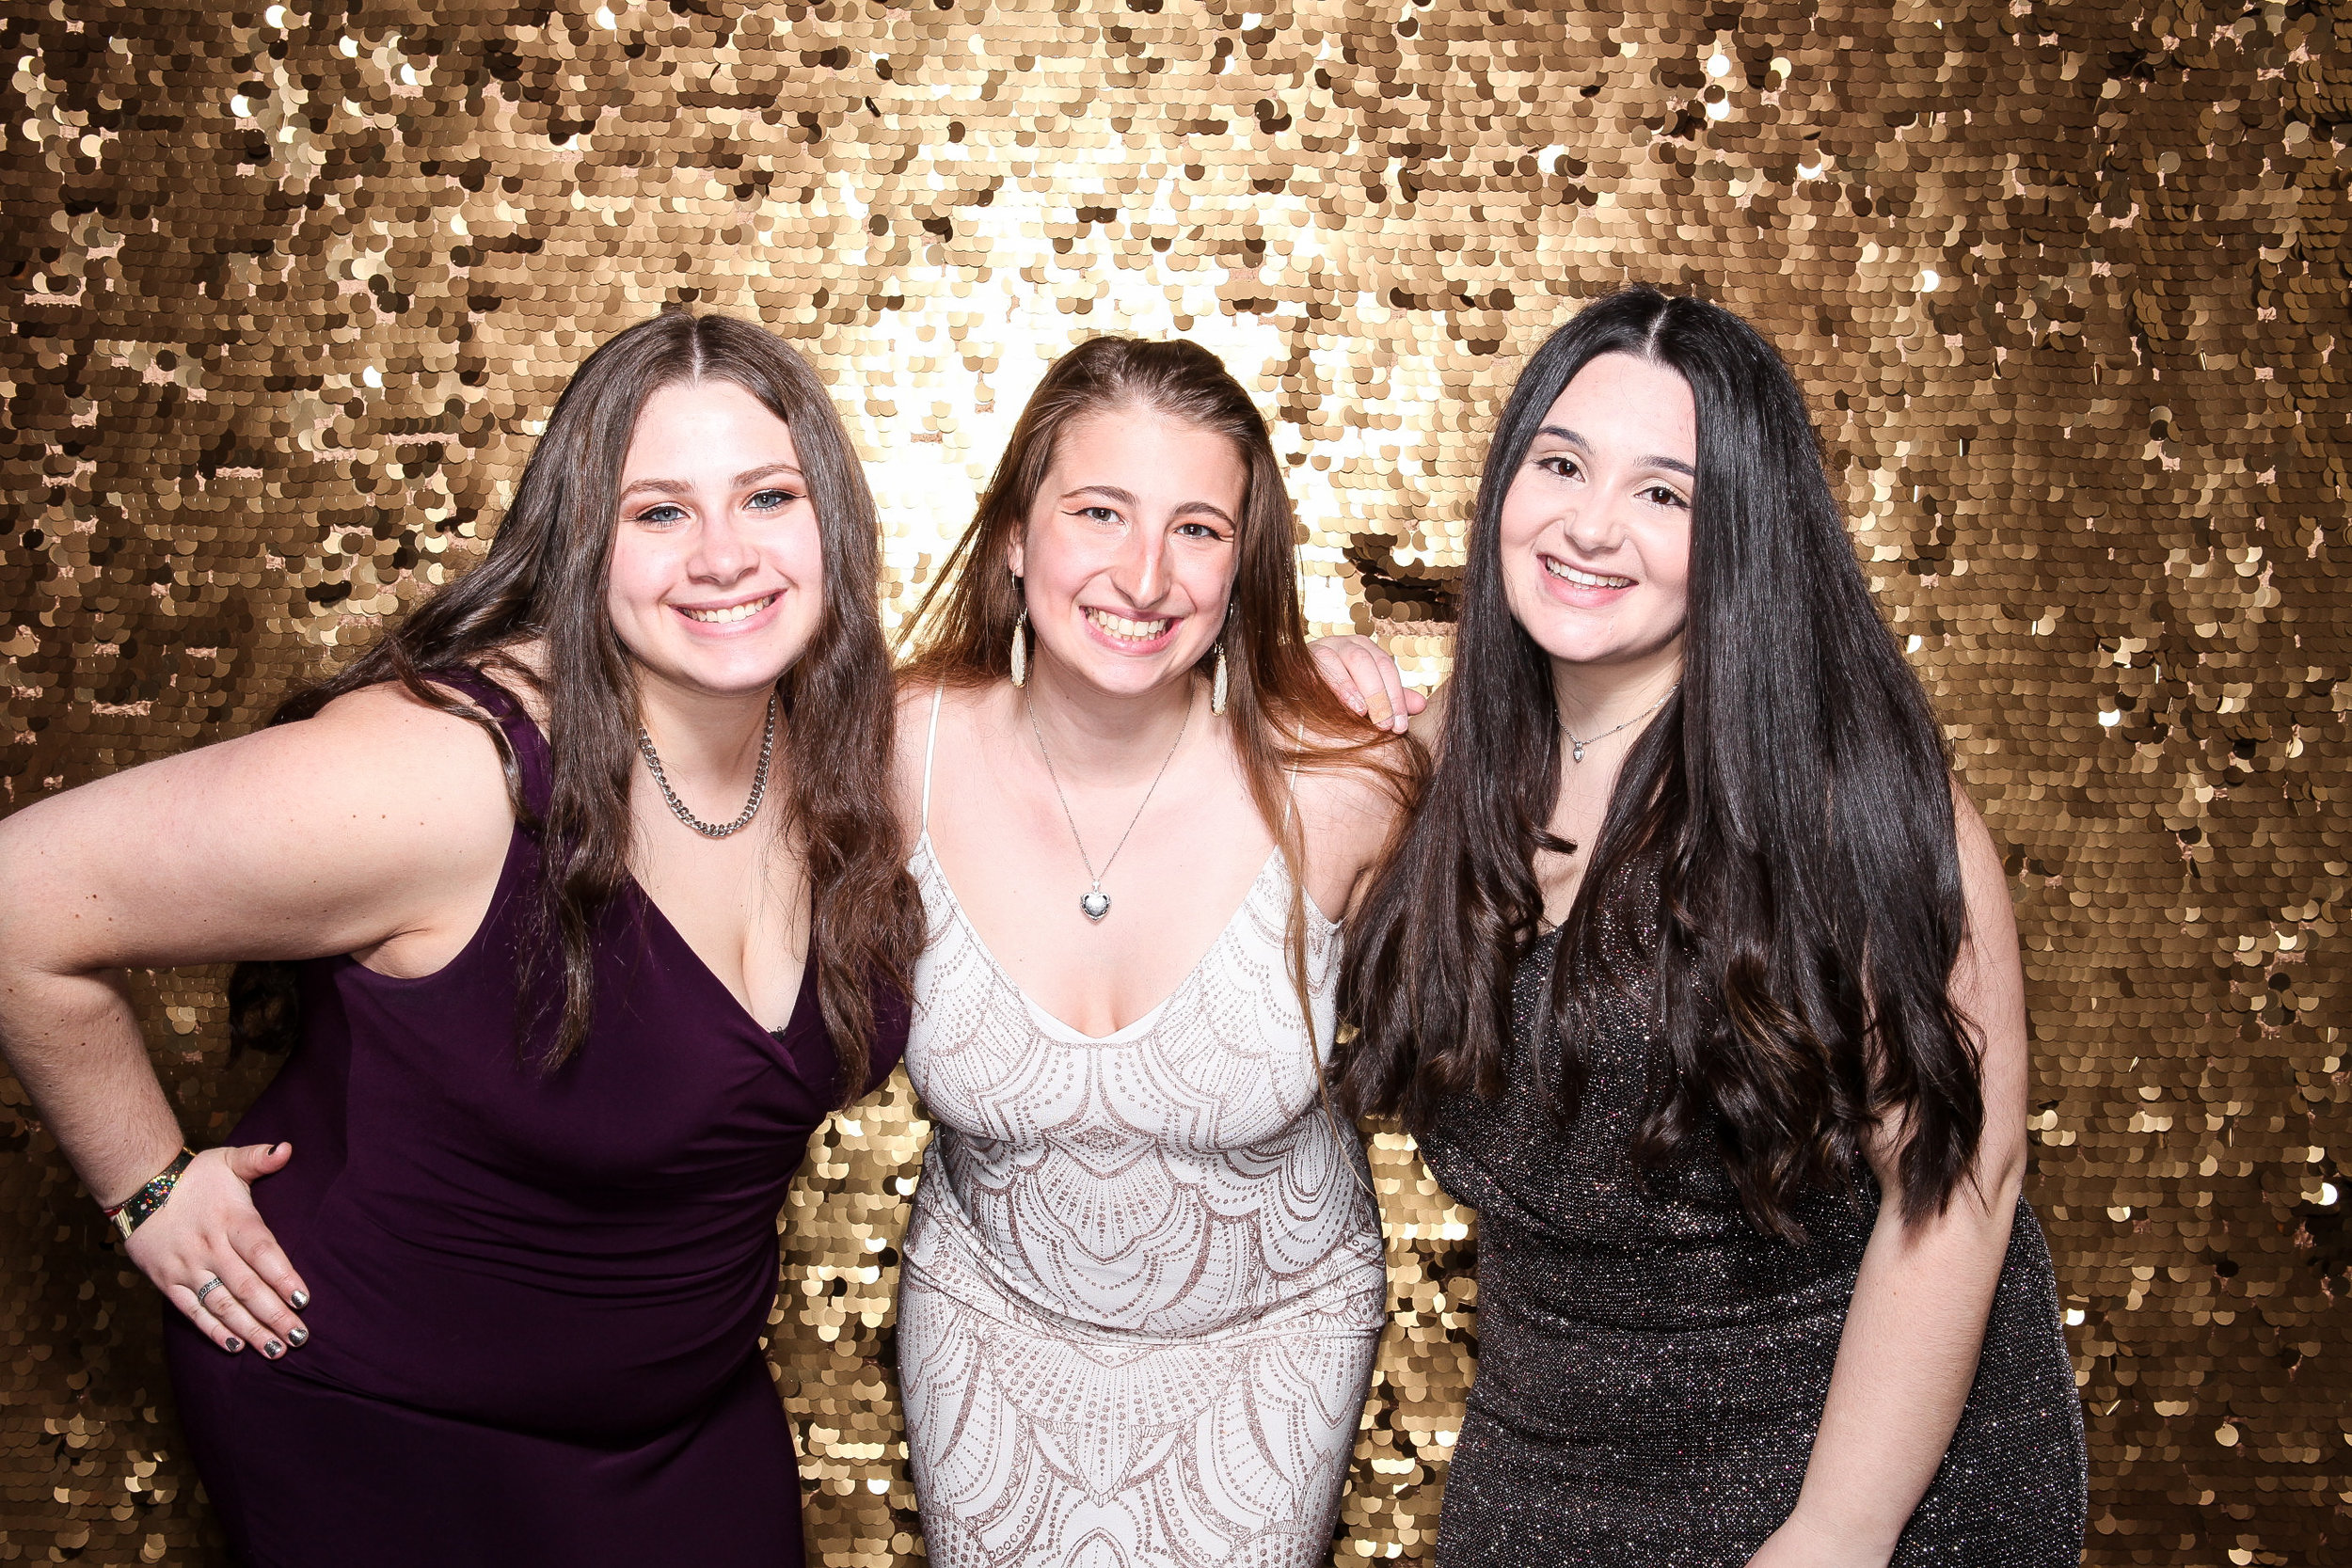 20190503_Adelphi_Senior_Formal-025.jpg